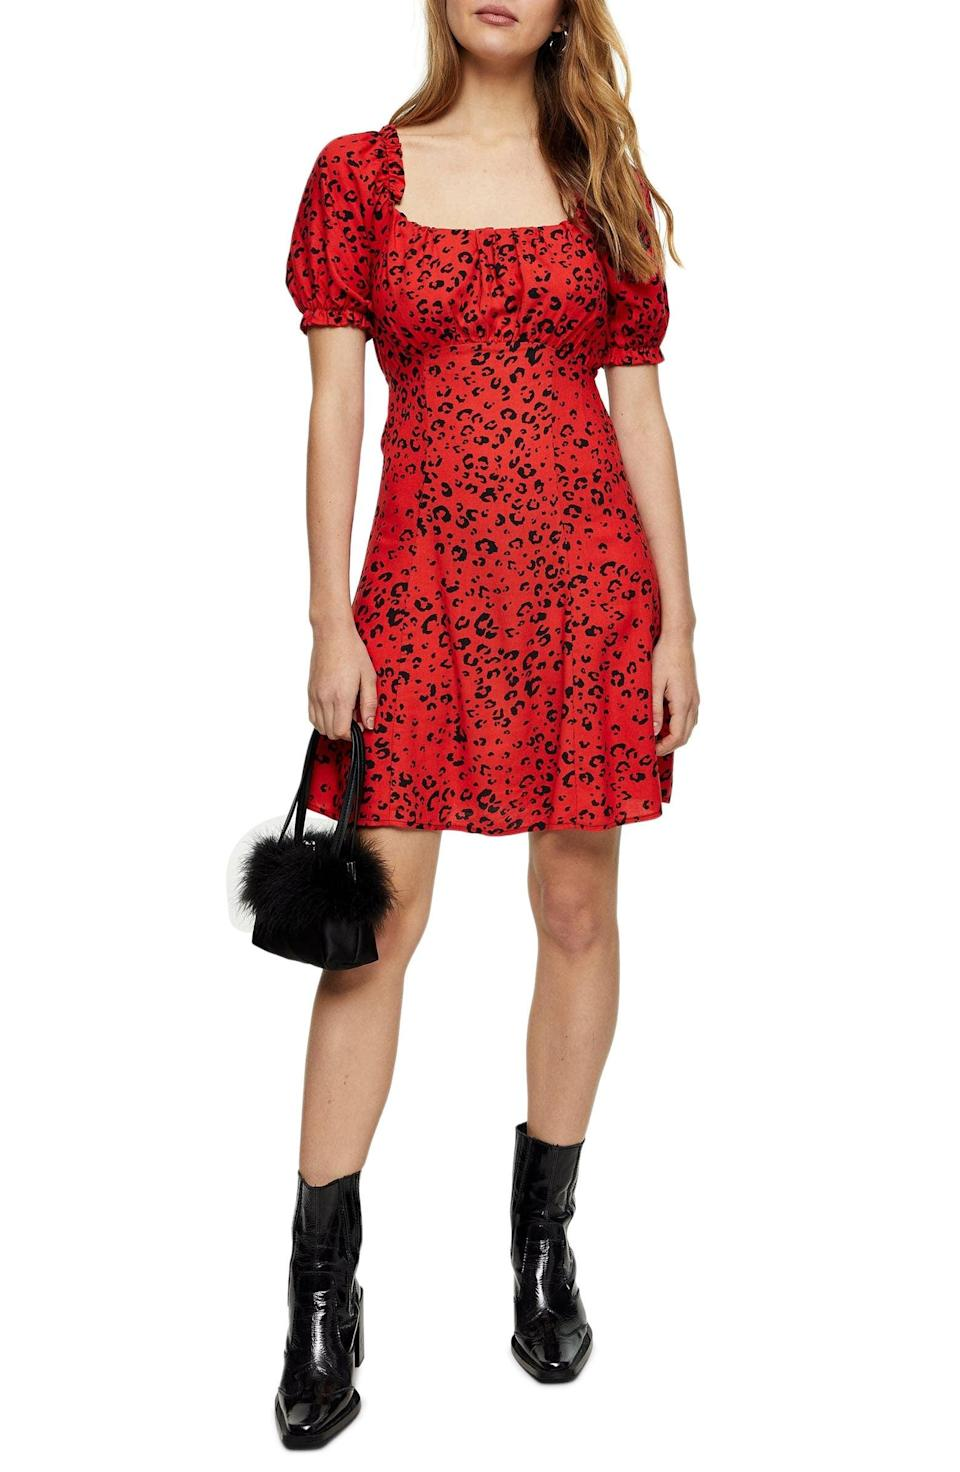 <p>Go for a bright pop of color with this <span>Topshop Leopard Print Gathered Bust Minidress</span> ($34, originally $50).</p>